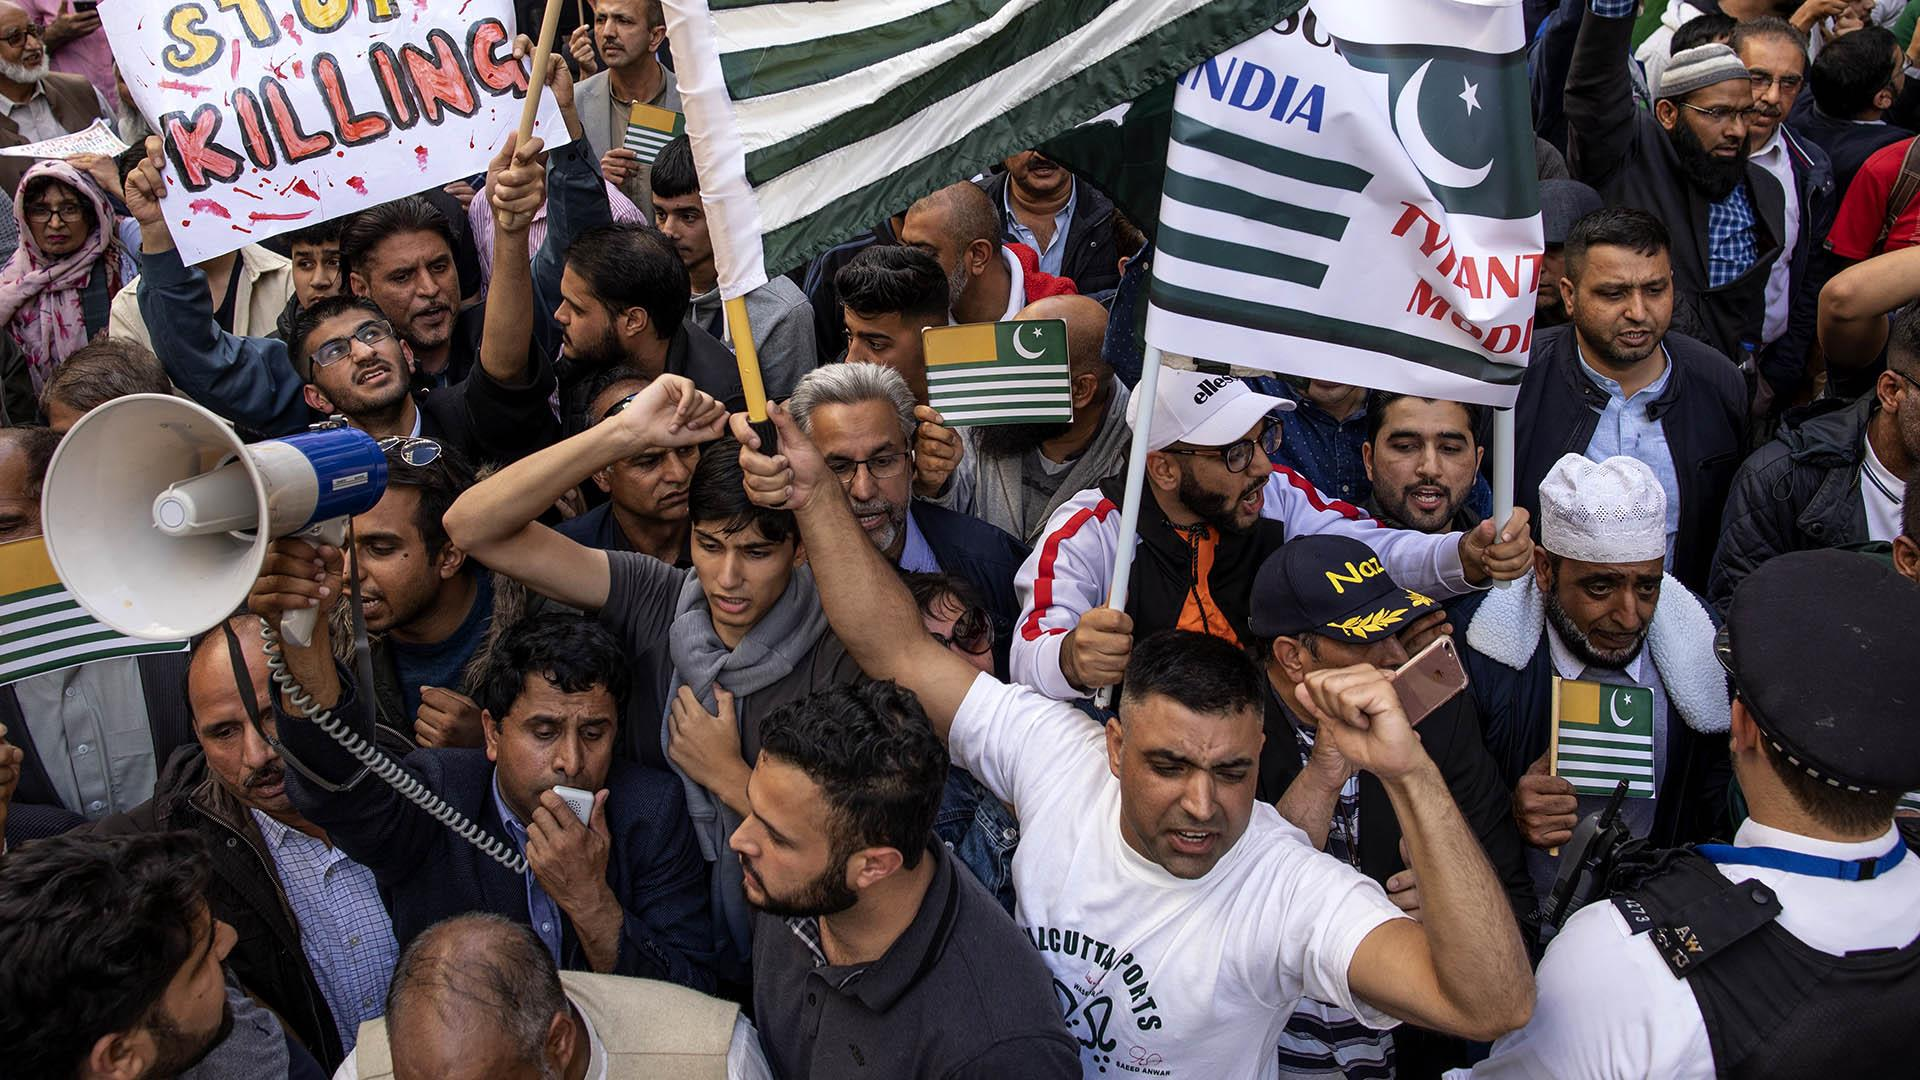 Thousands protest over Kashmir outside the Indian High Commission in London